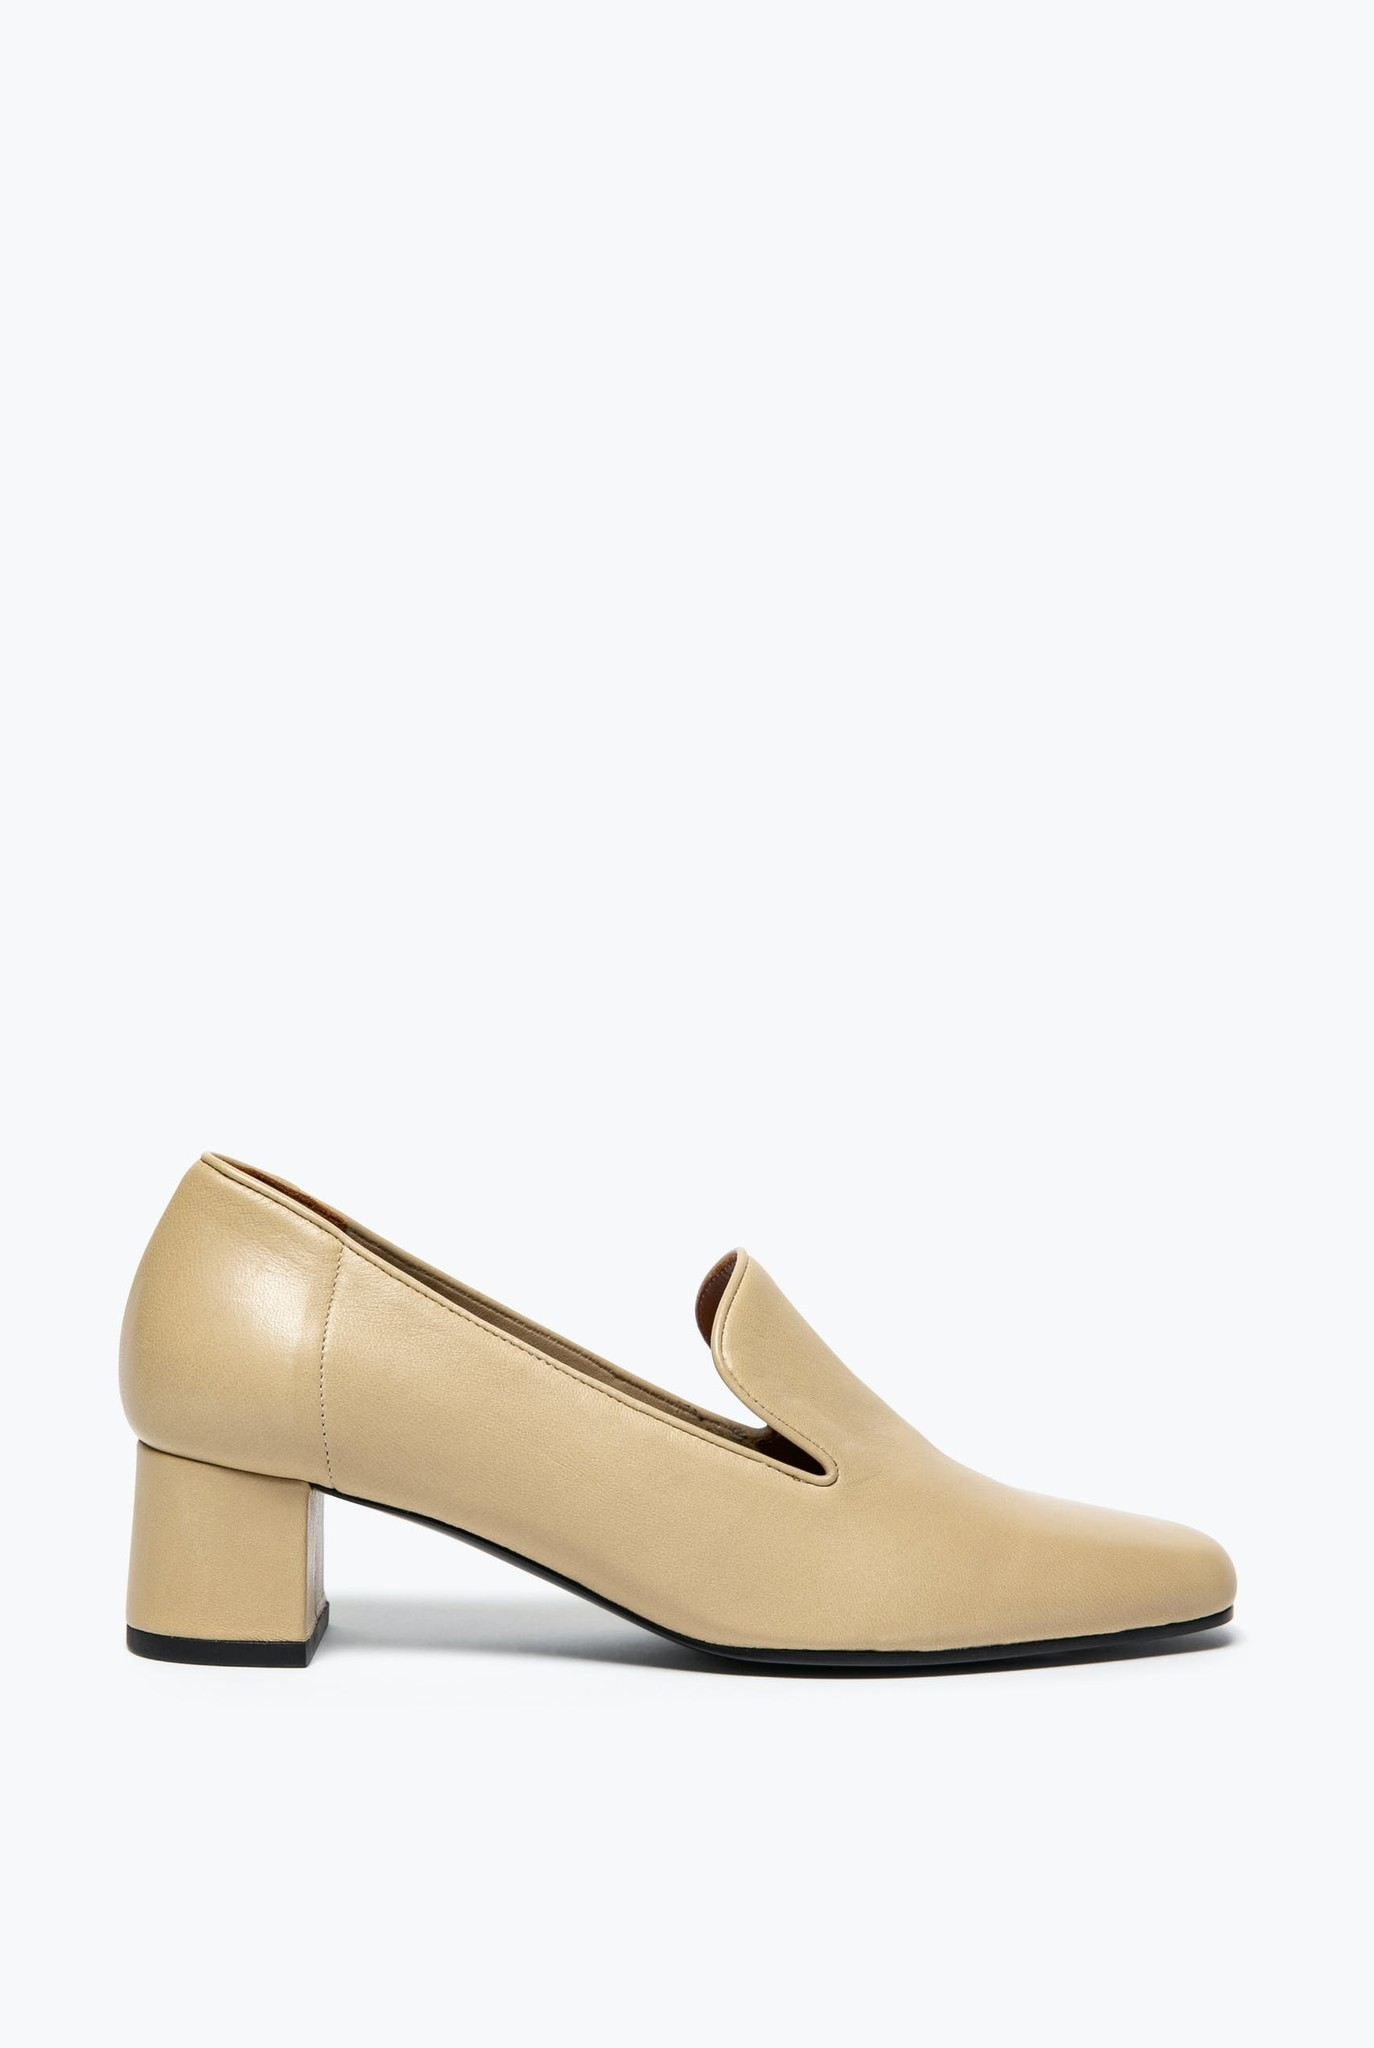 Niko Heeled Loafer Boreal Beige